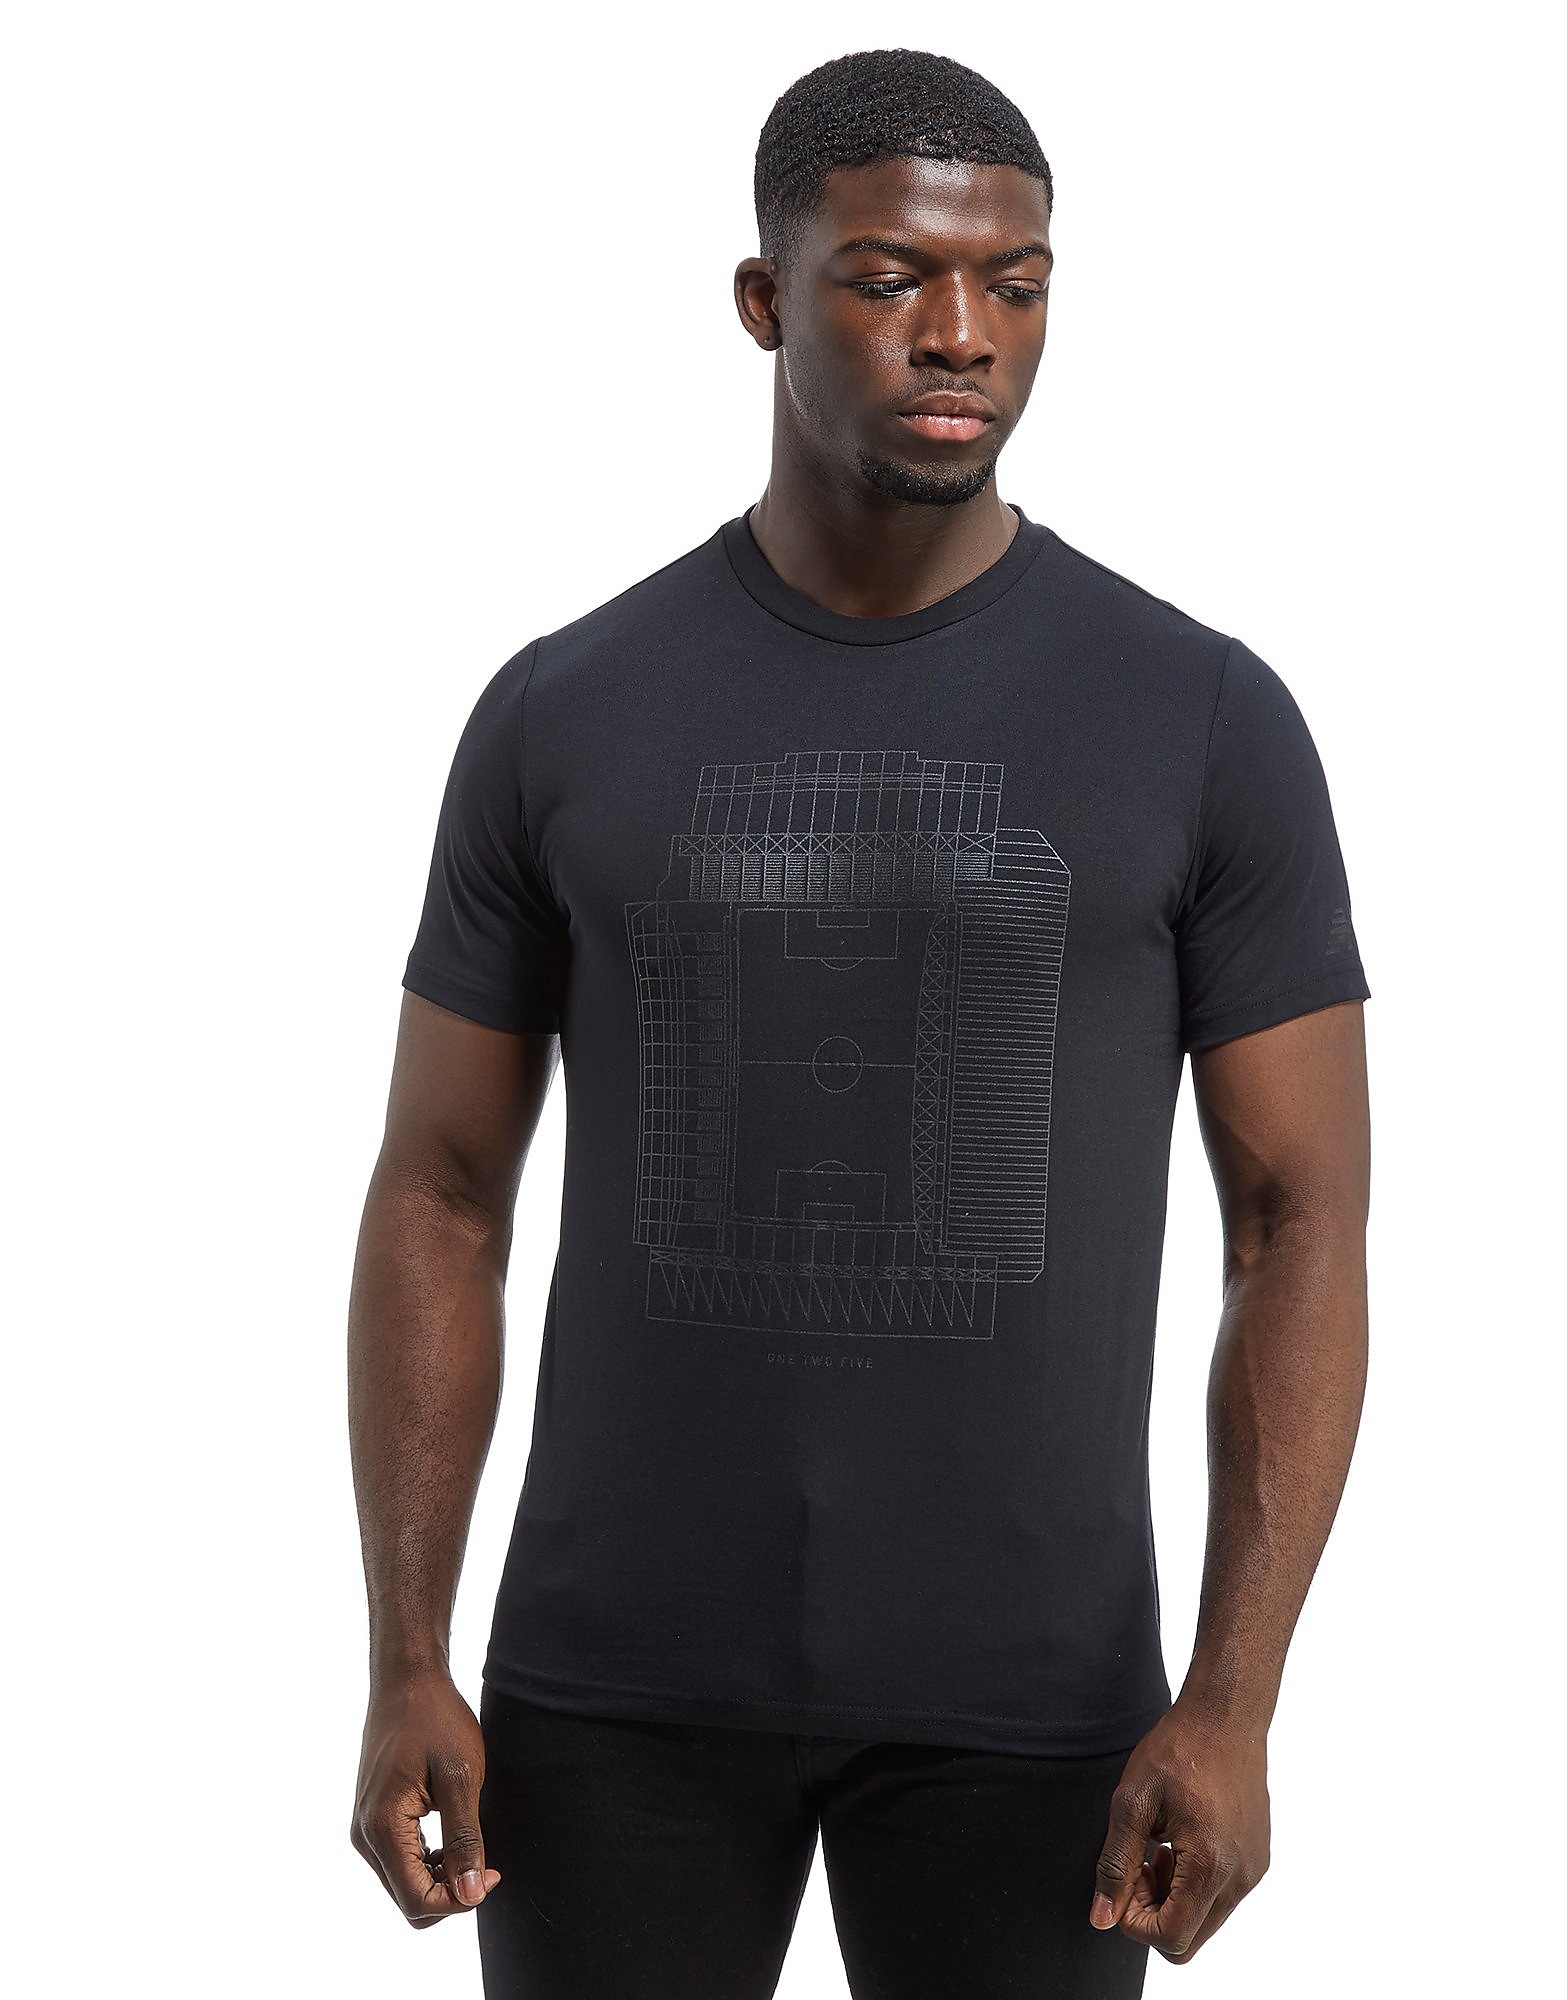 New Balance 247 Liverpool FC Pitch T-Shirt